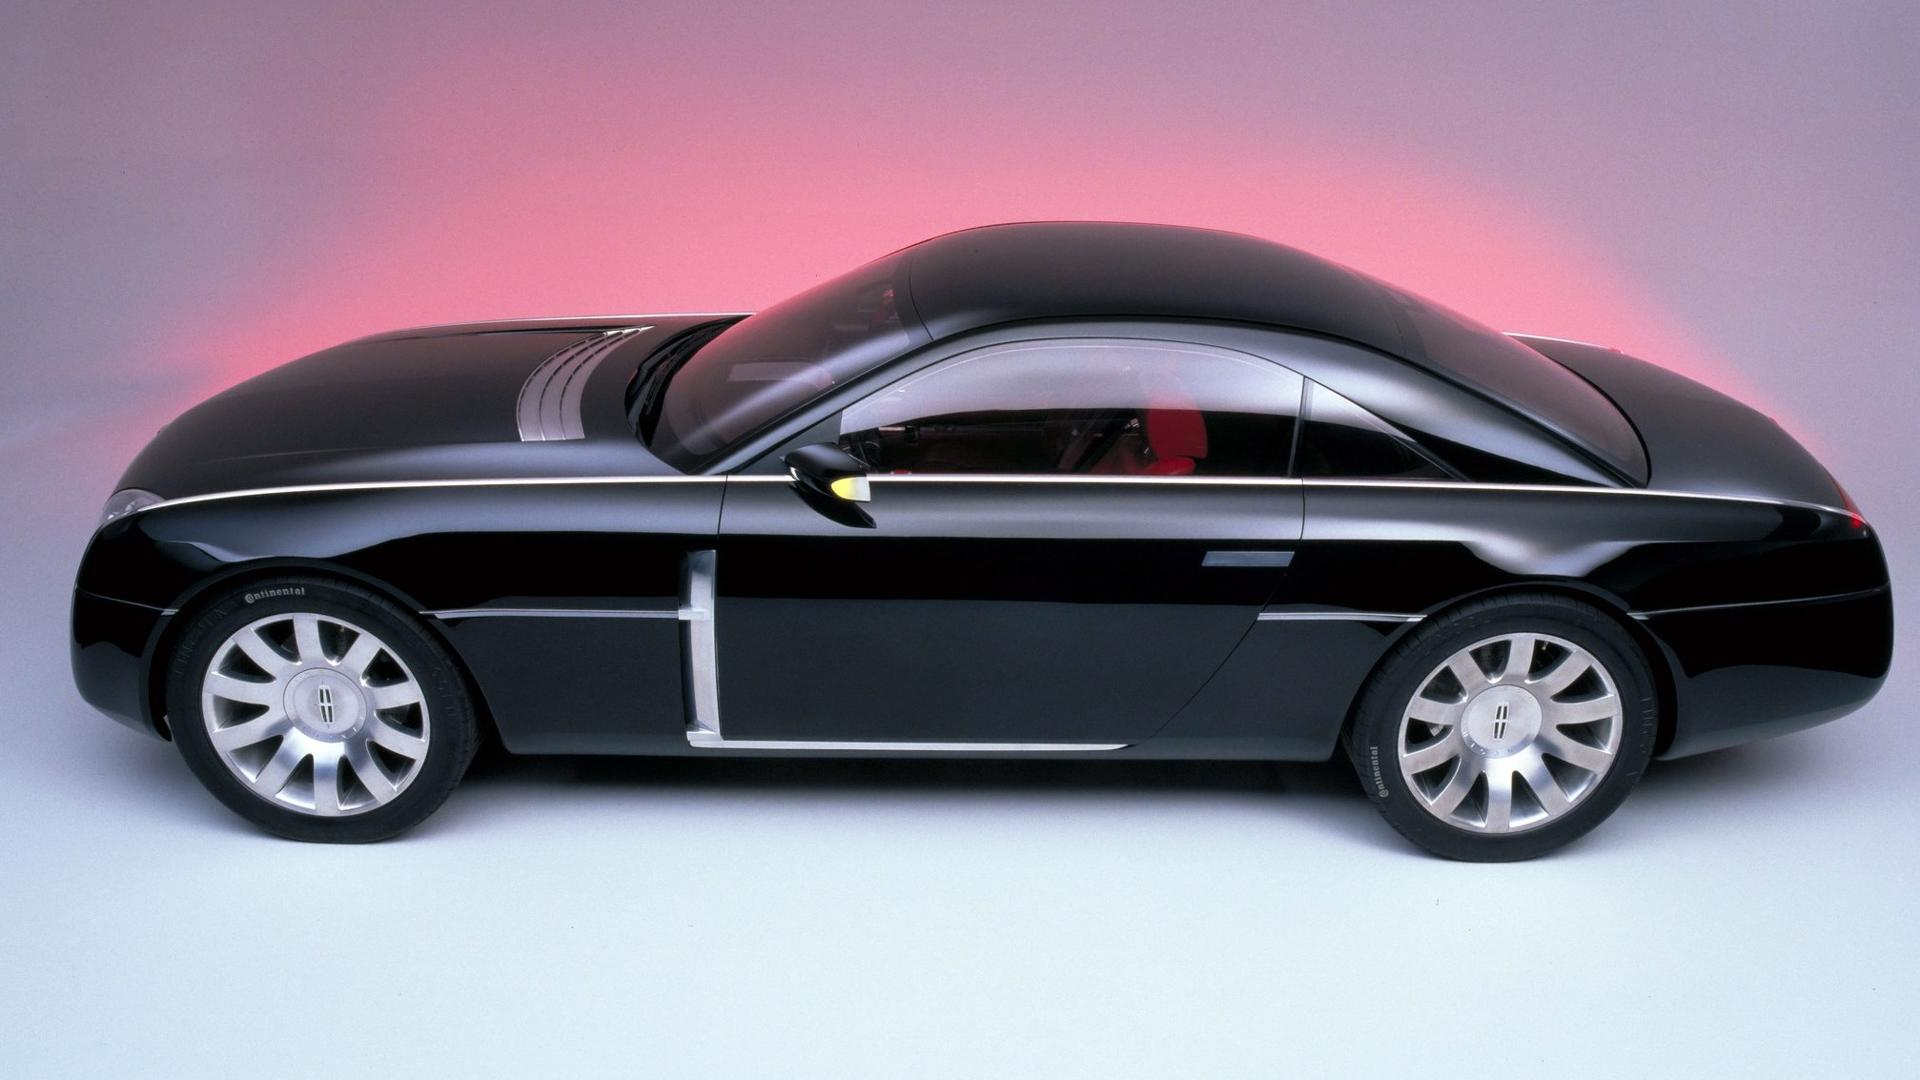 https://icdn-1.motor1.com/images/mgl/Wewpo/s1/2001-lincoln-mk9-concept.jpg